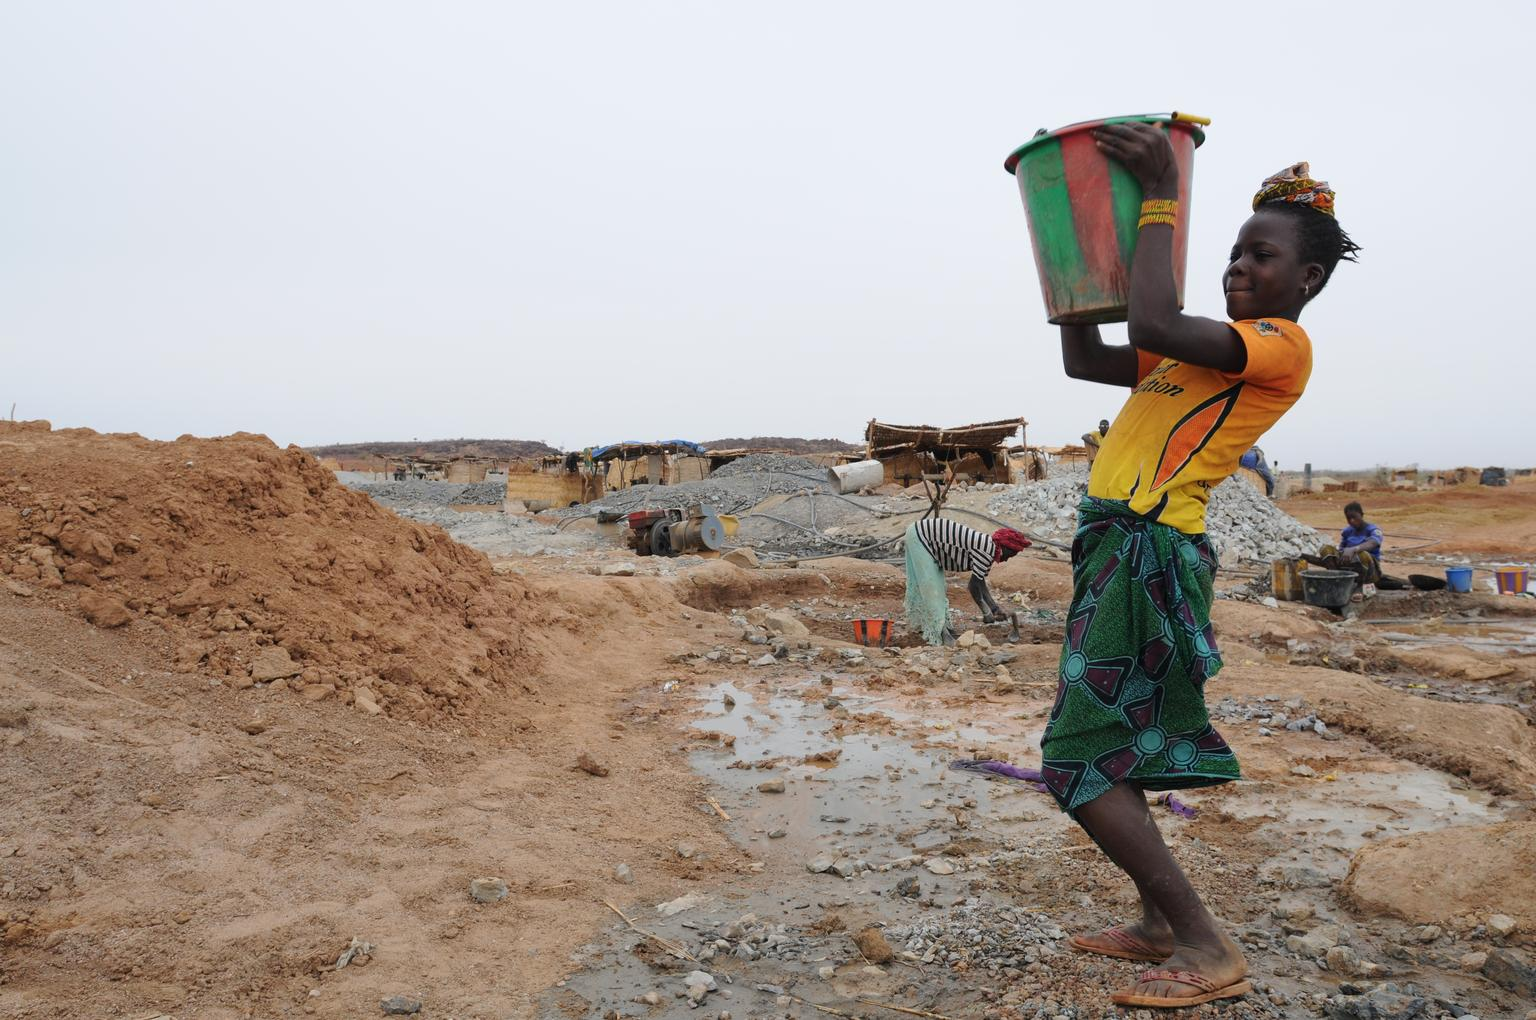 A girl carries a bucket filled with water, which she will use to wash the dust from ground rocks while panning for gold, at the Gorol Kadje mine in Burkina Faso.